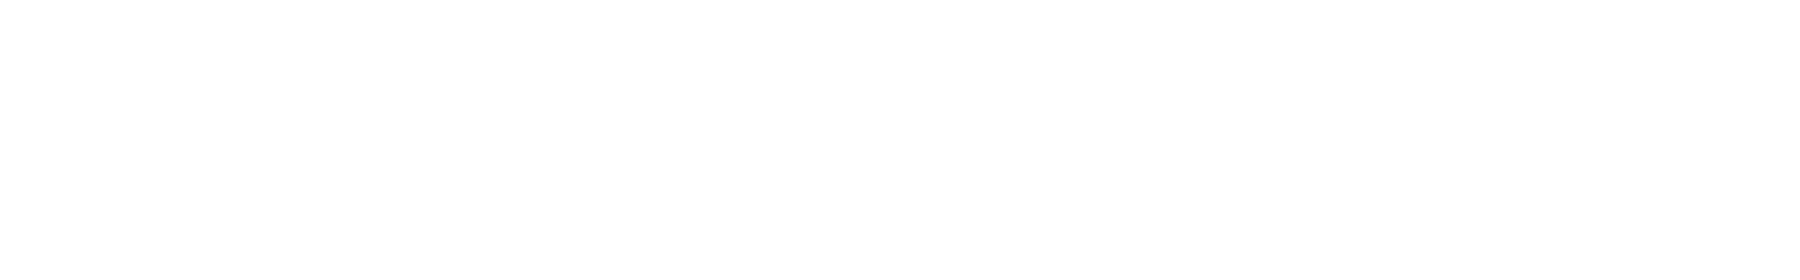 veh1 cutted sounds   049